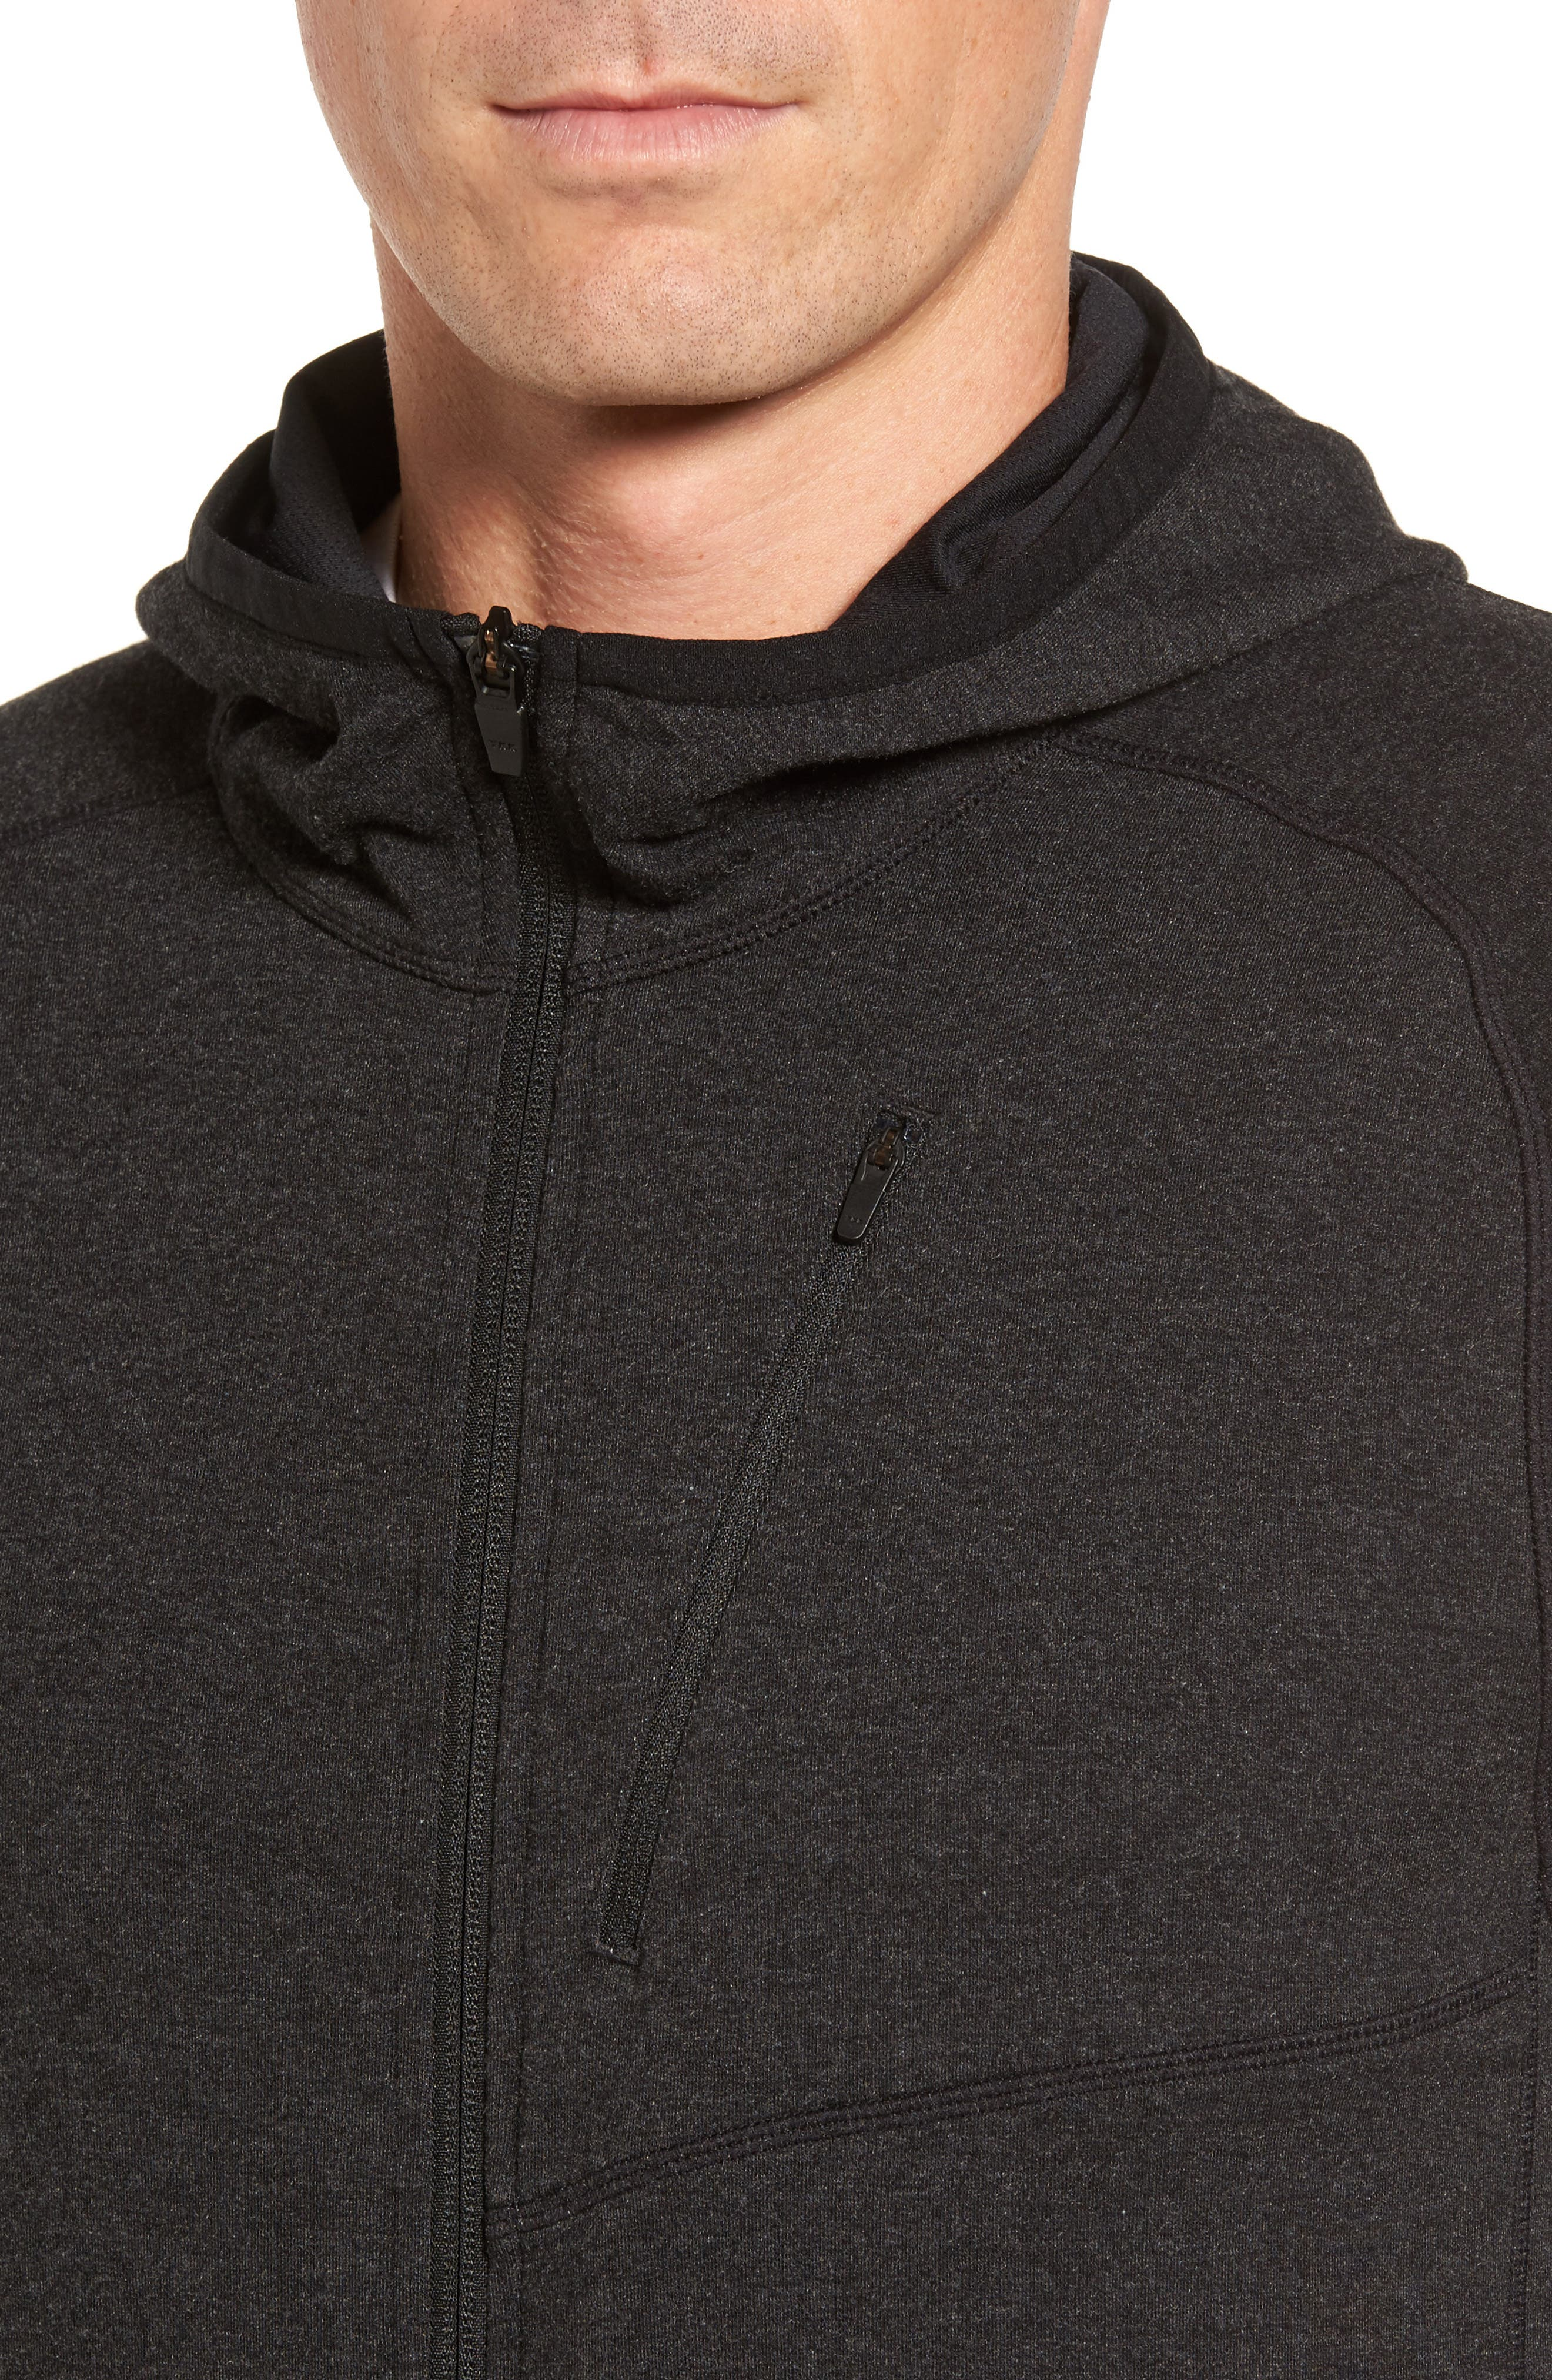 Pyrite Zip Hoodie,                             Alternate thumbnail 4, color,                             001